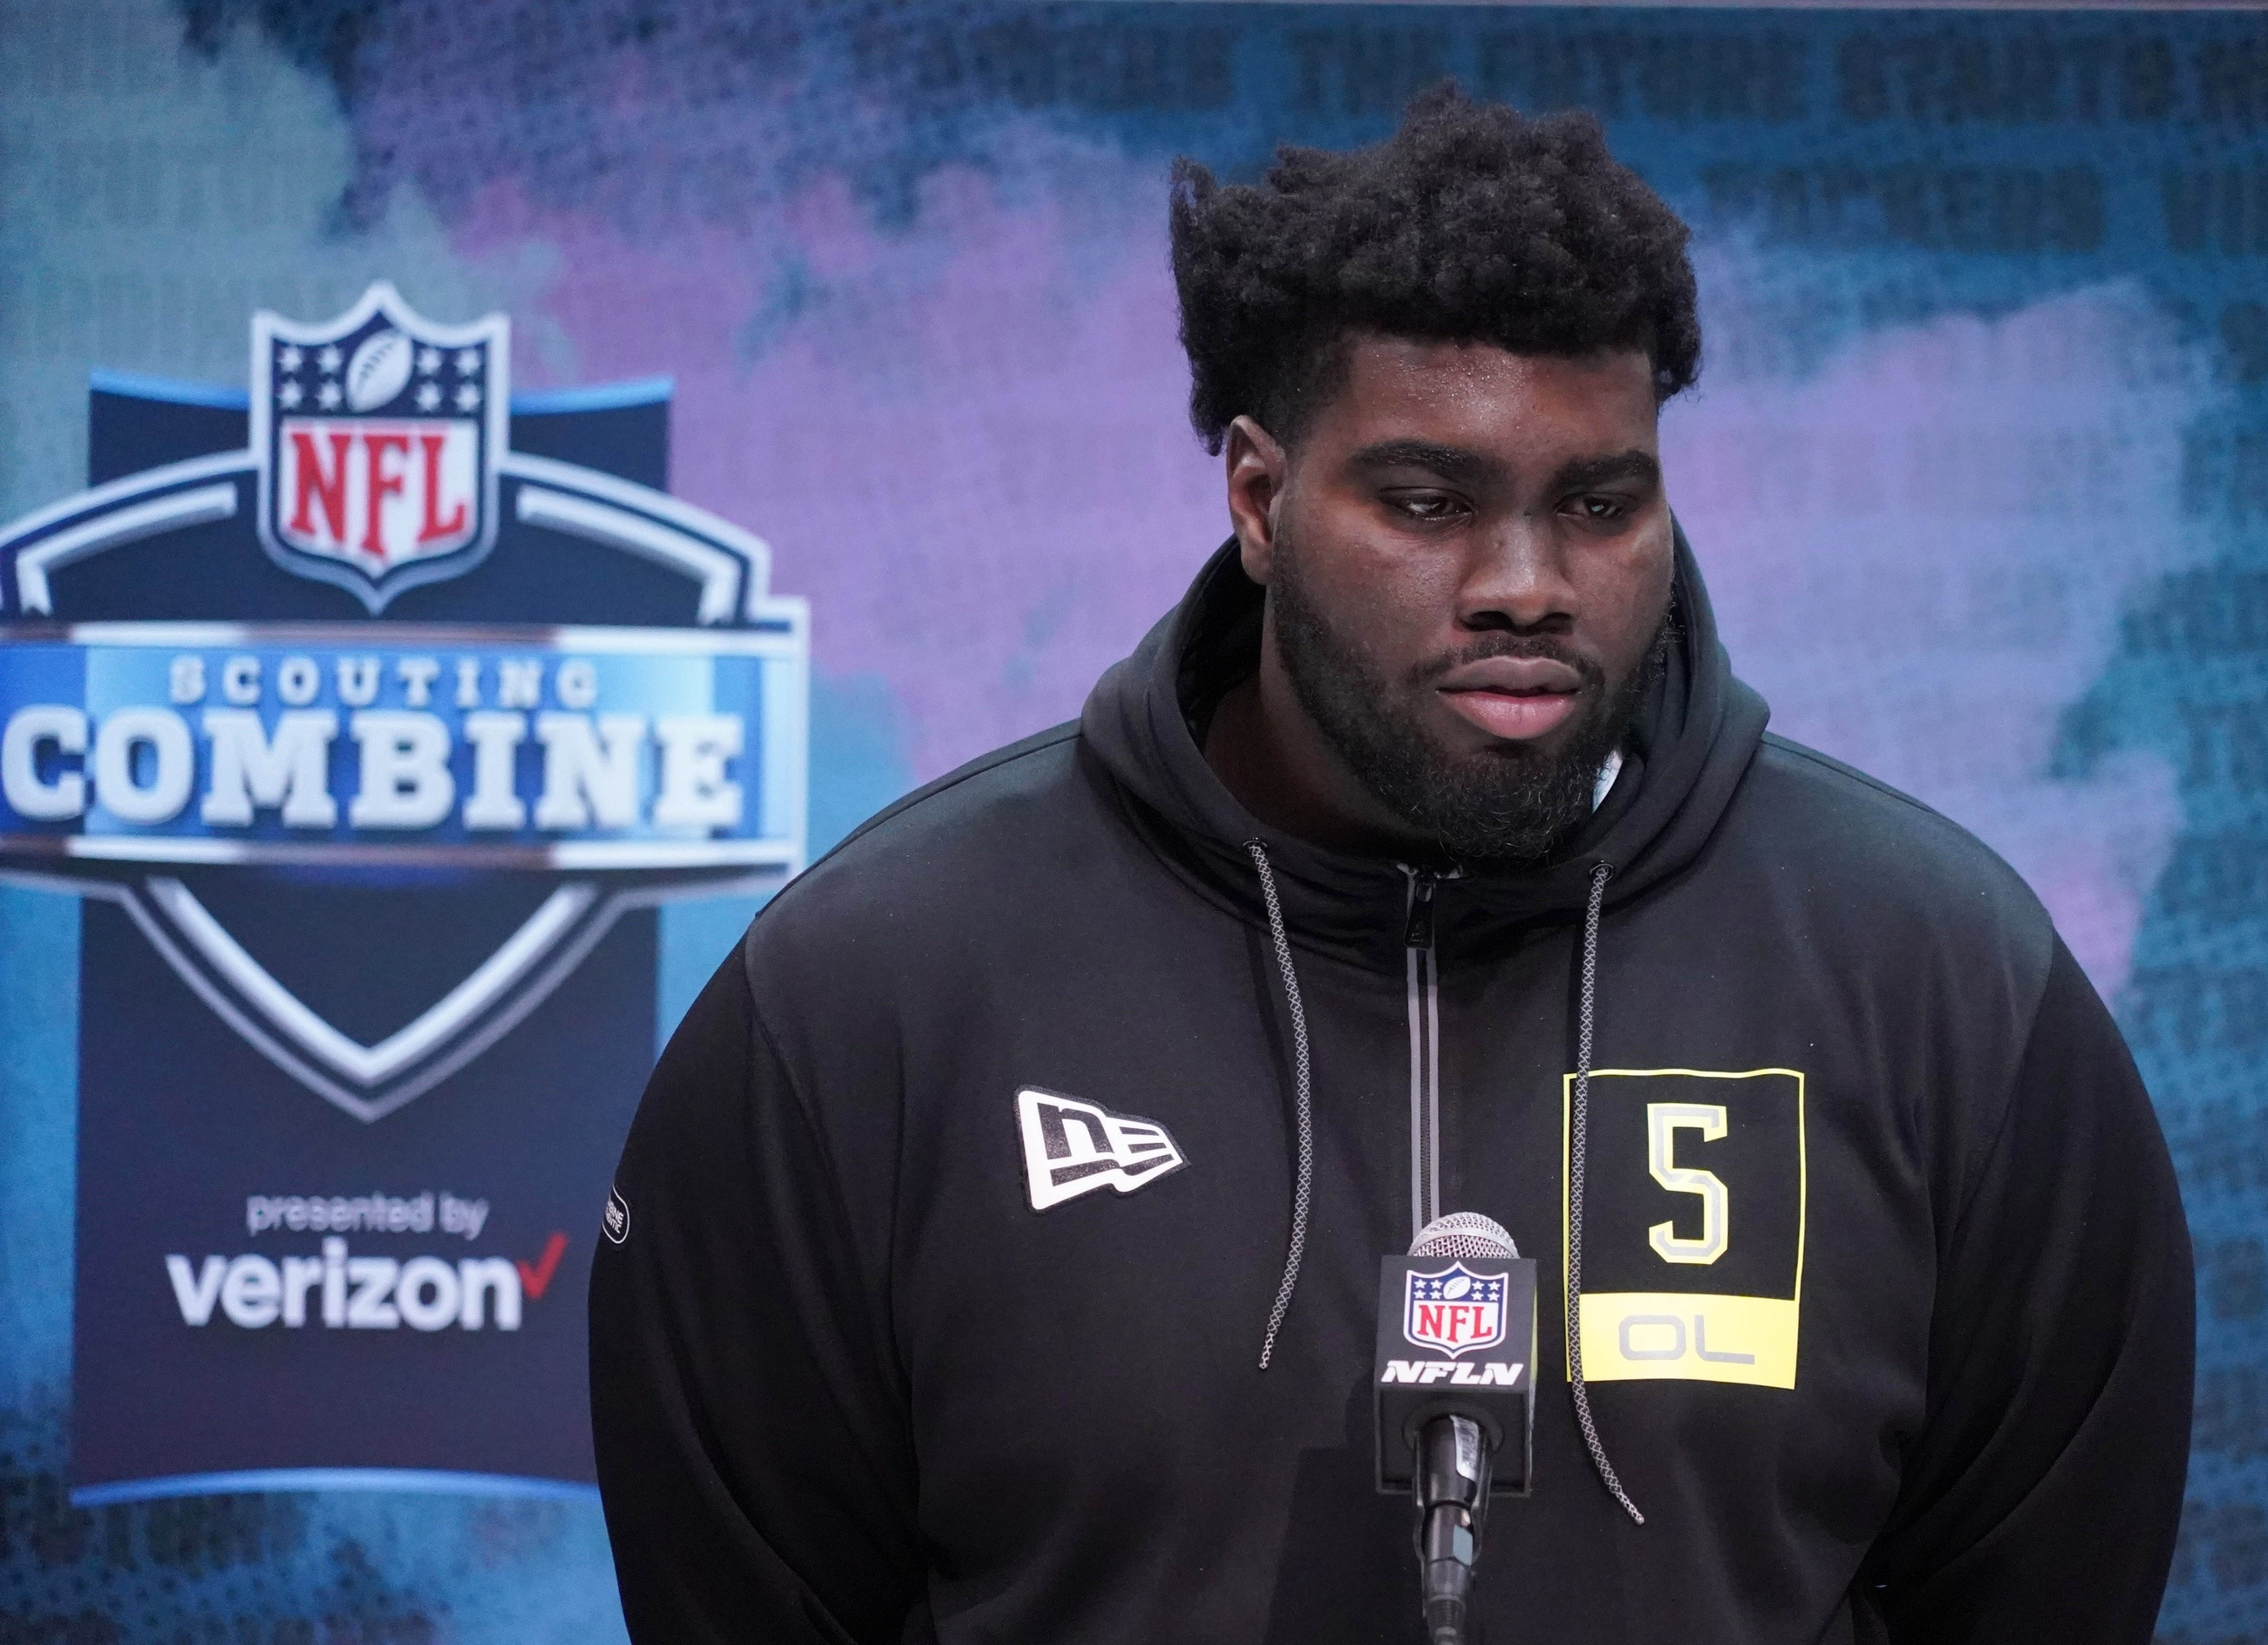 WATCH: Top NFL Draft prospect shows insane strength by pushing truck